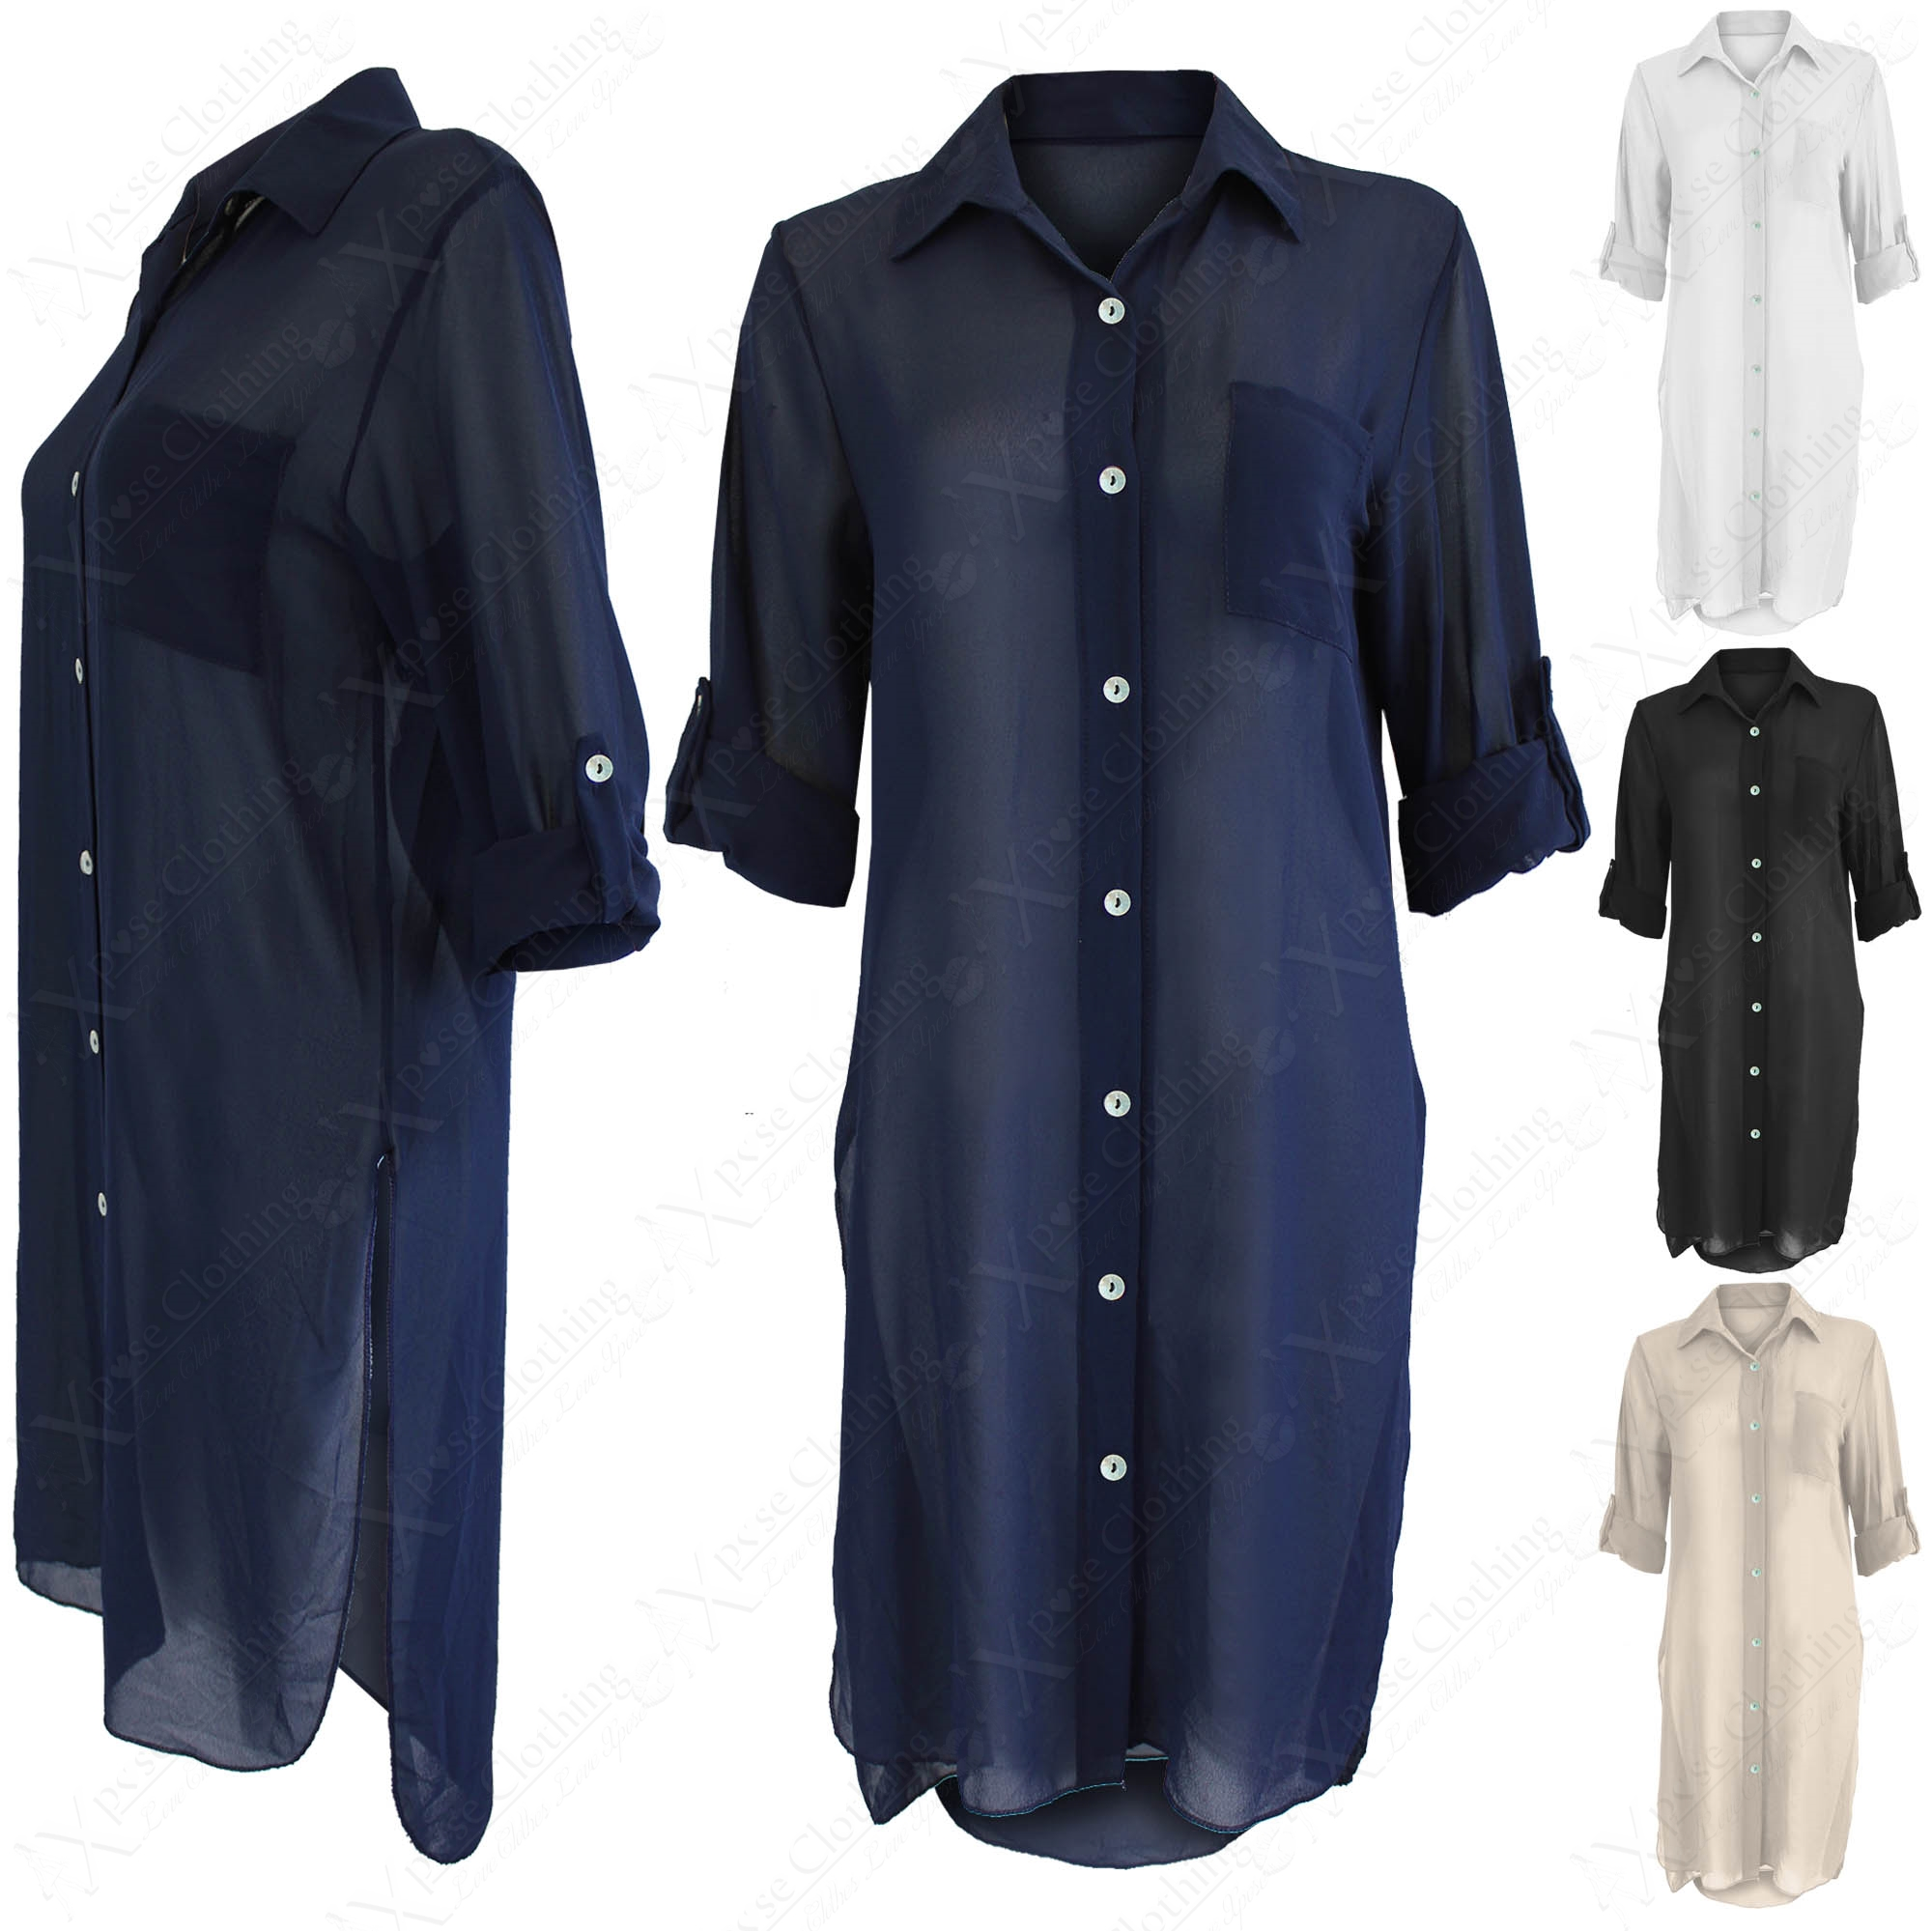 Long Sleeve Shirts: Free Shipping on orders over $45 at celebtubesnews.ml - Your Online Tops Store! Overstock uses cookies to ensure you get the best experience on our site. Casual Sexy Deep V Neck Button Slim Waist Long Sleeves Chiffon Blouse Shirt. 2 Reviews. SALE. Quick View. Sale $ 79 - .